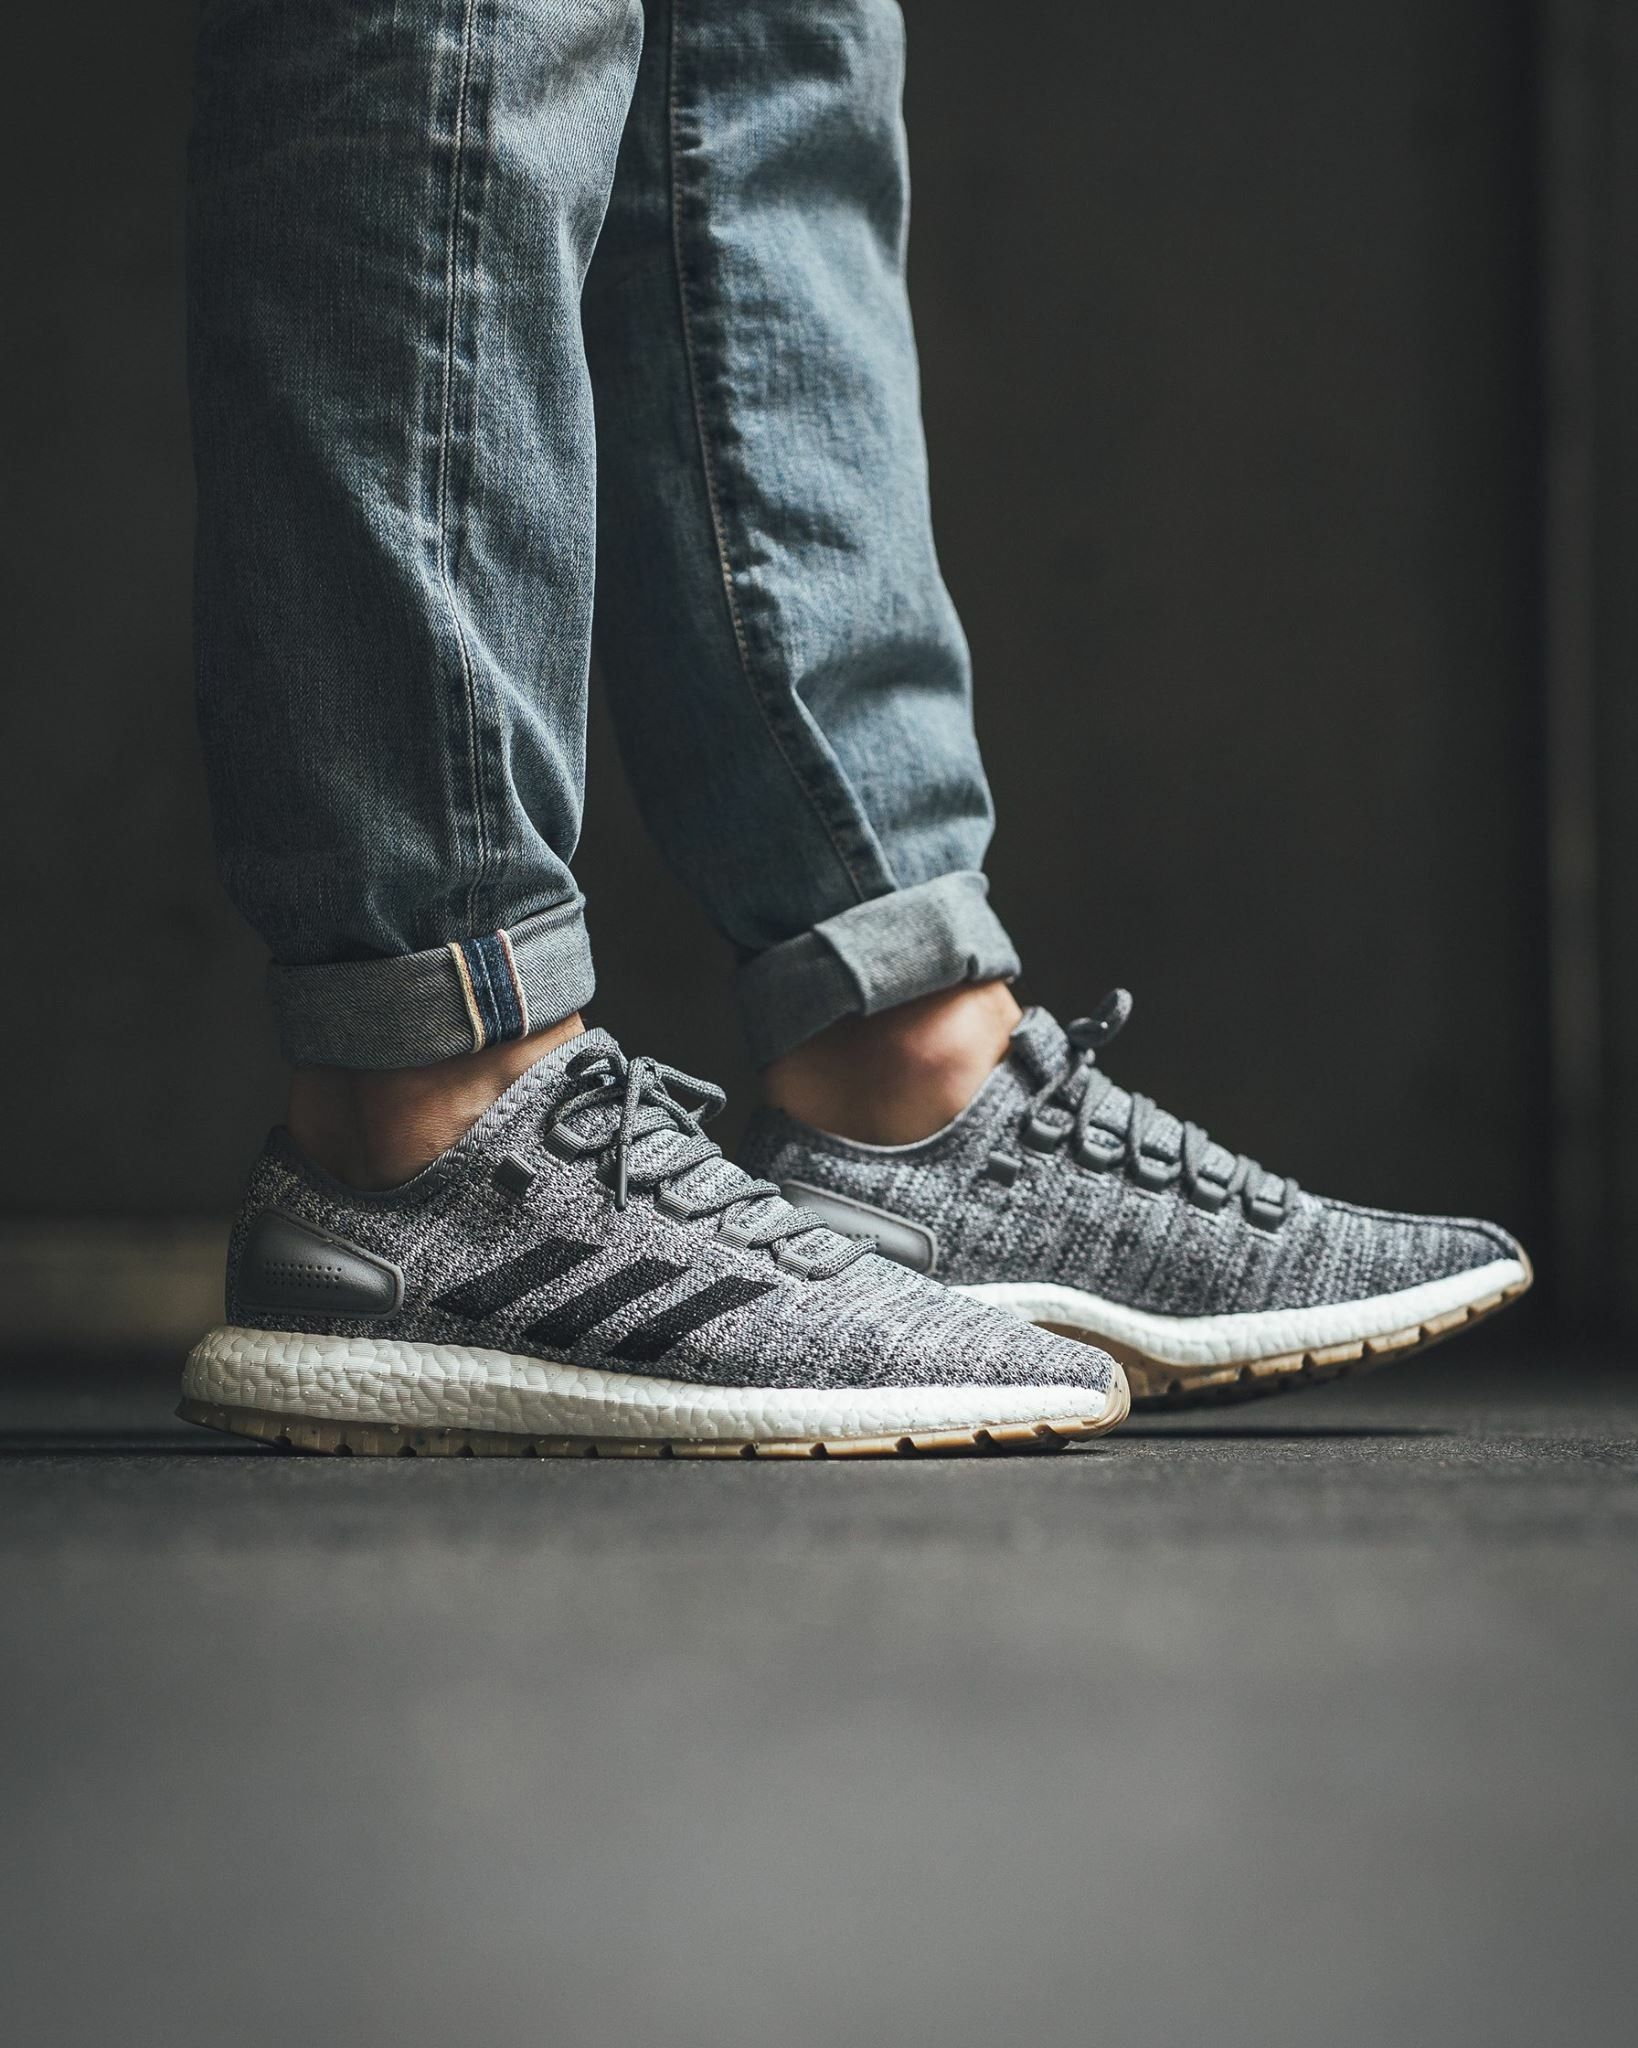 Adidas Pure Boost Dpr Adidas Pure Boost Adidas Pure Pure Products